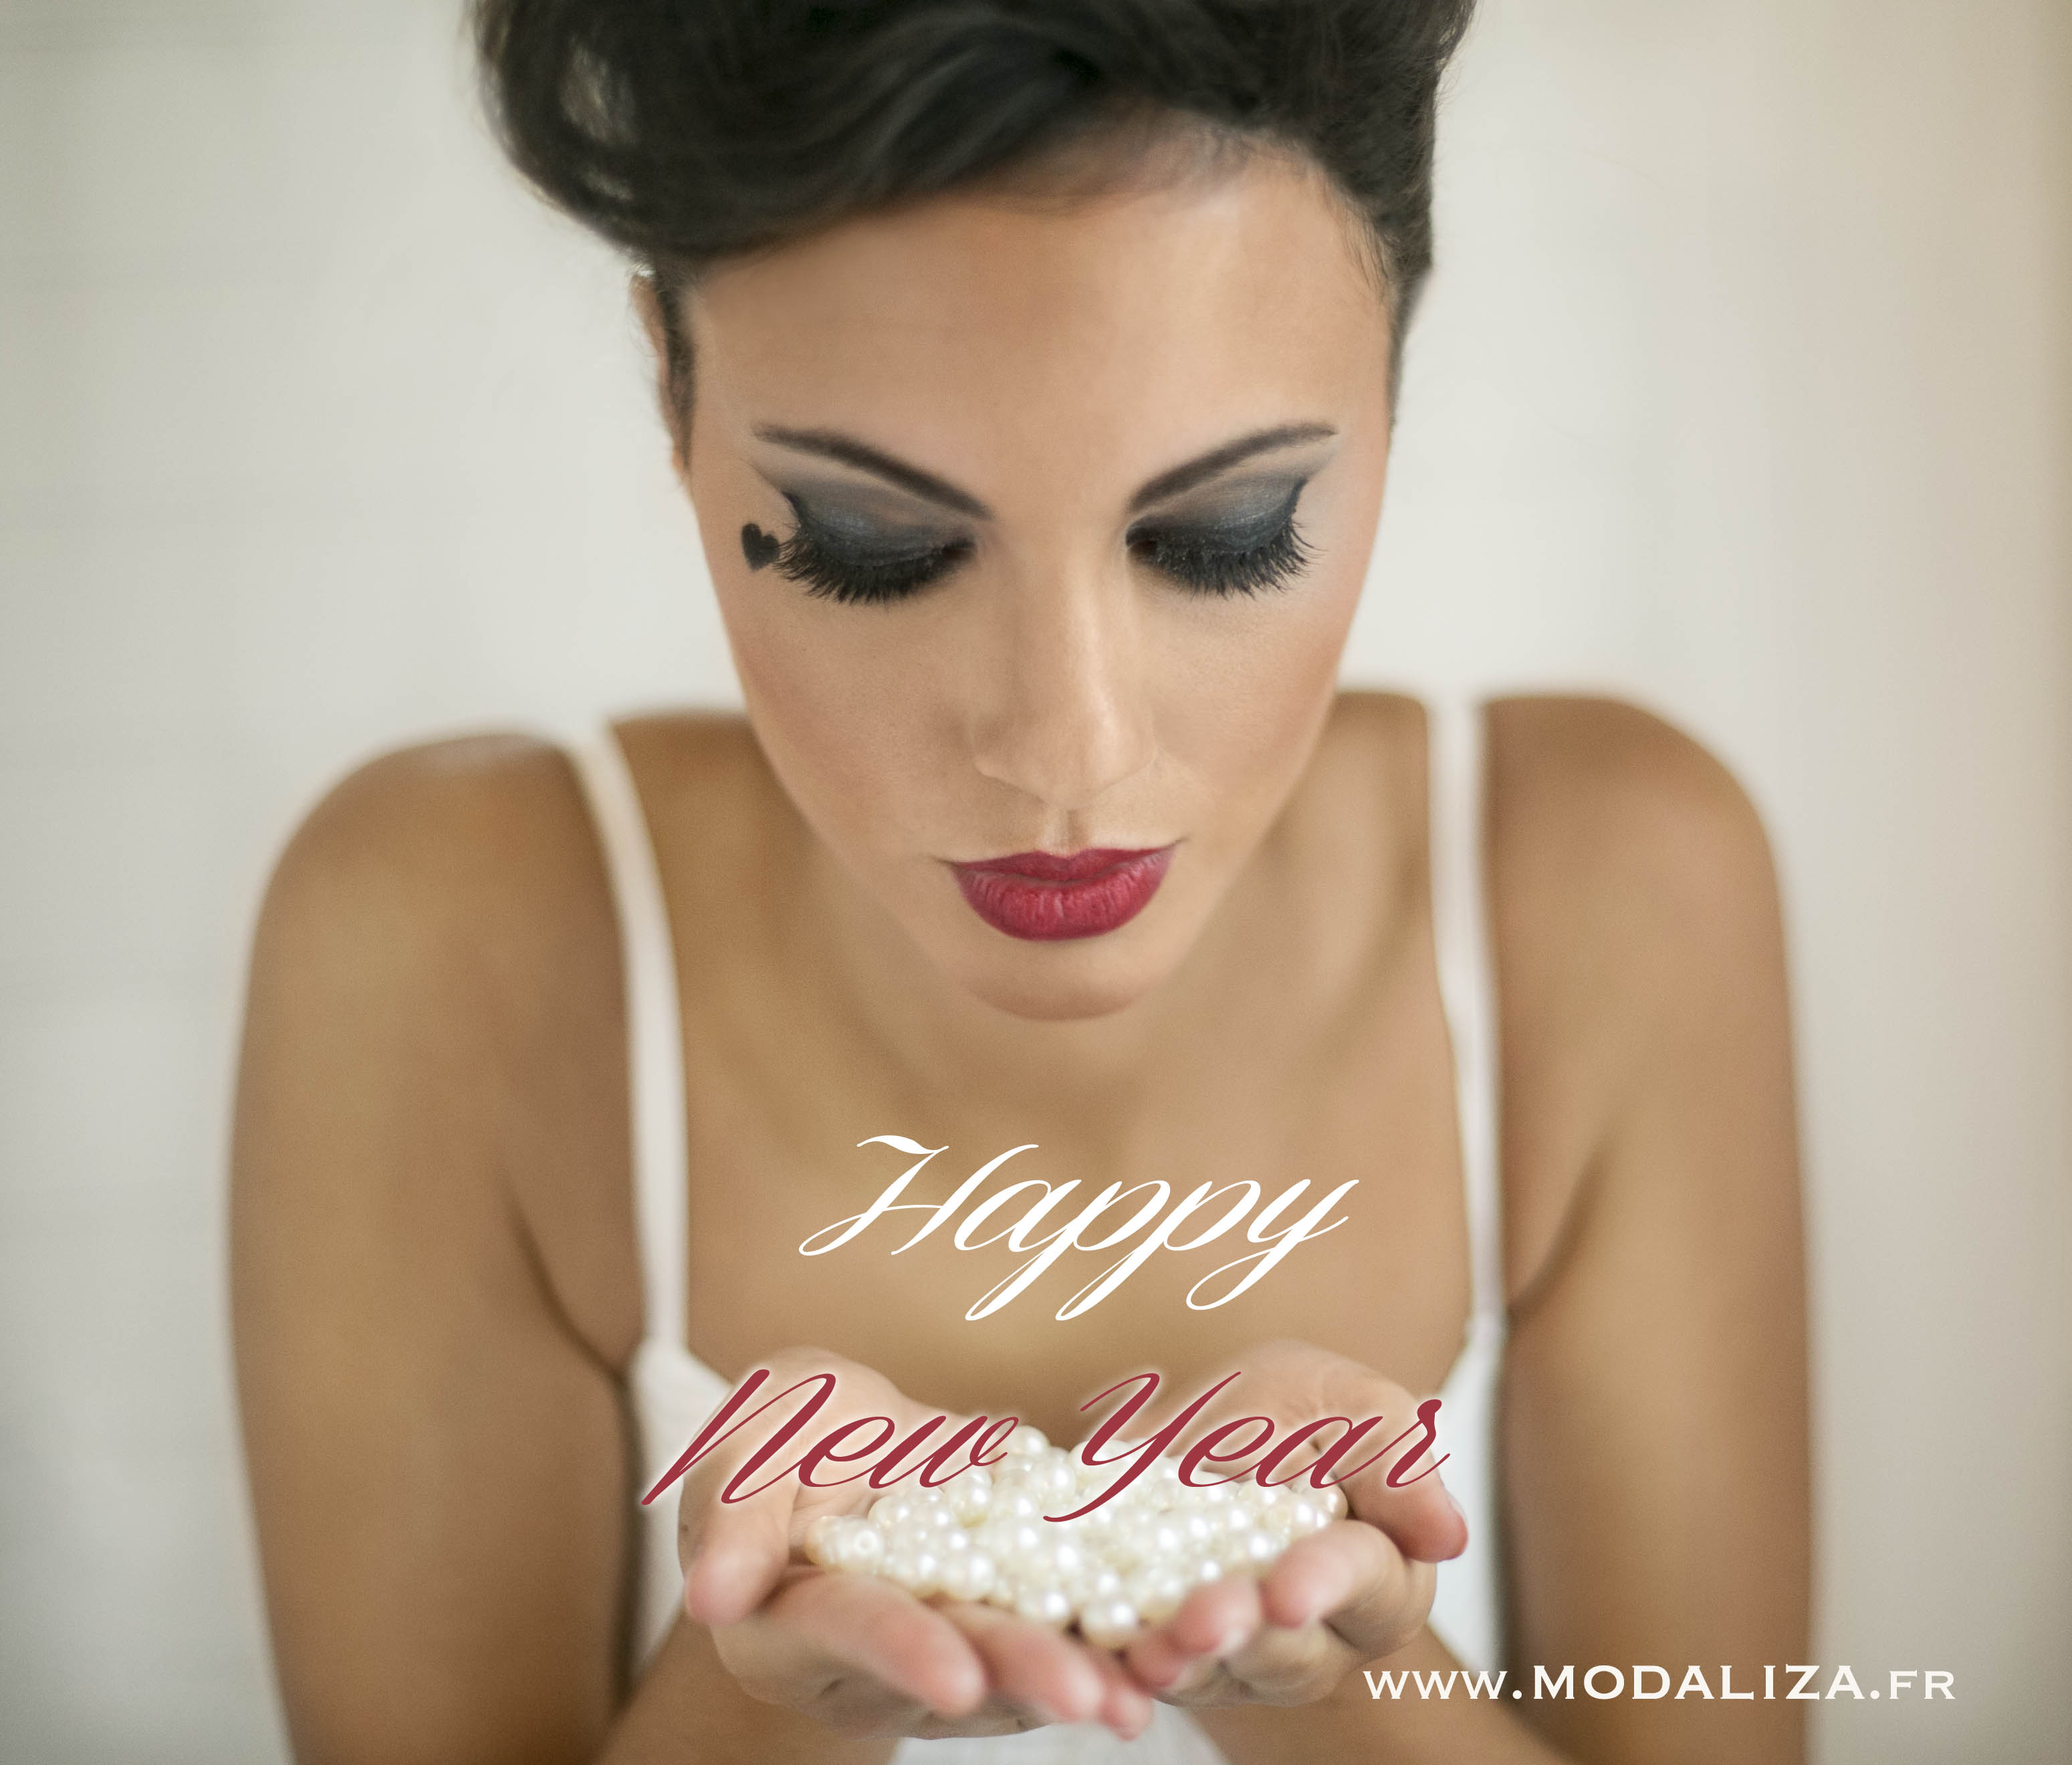 photo happy new year mariage wedding glamour rock chic pixie coiffure suany makeup beauty heart bride france by modaliza photographe